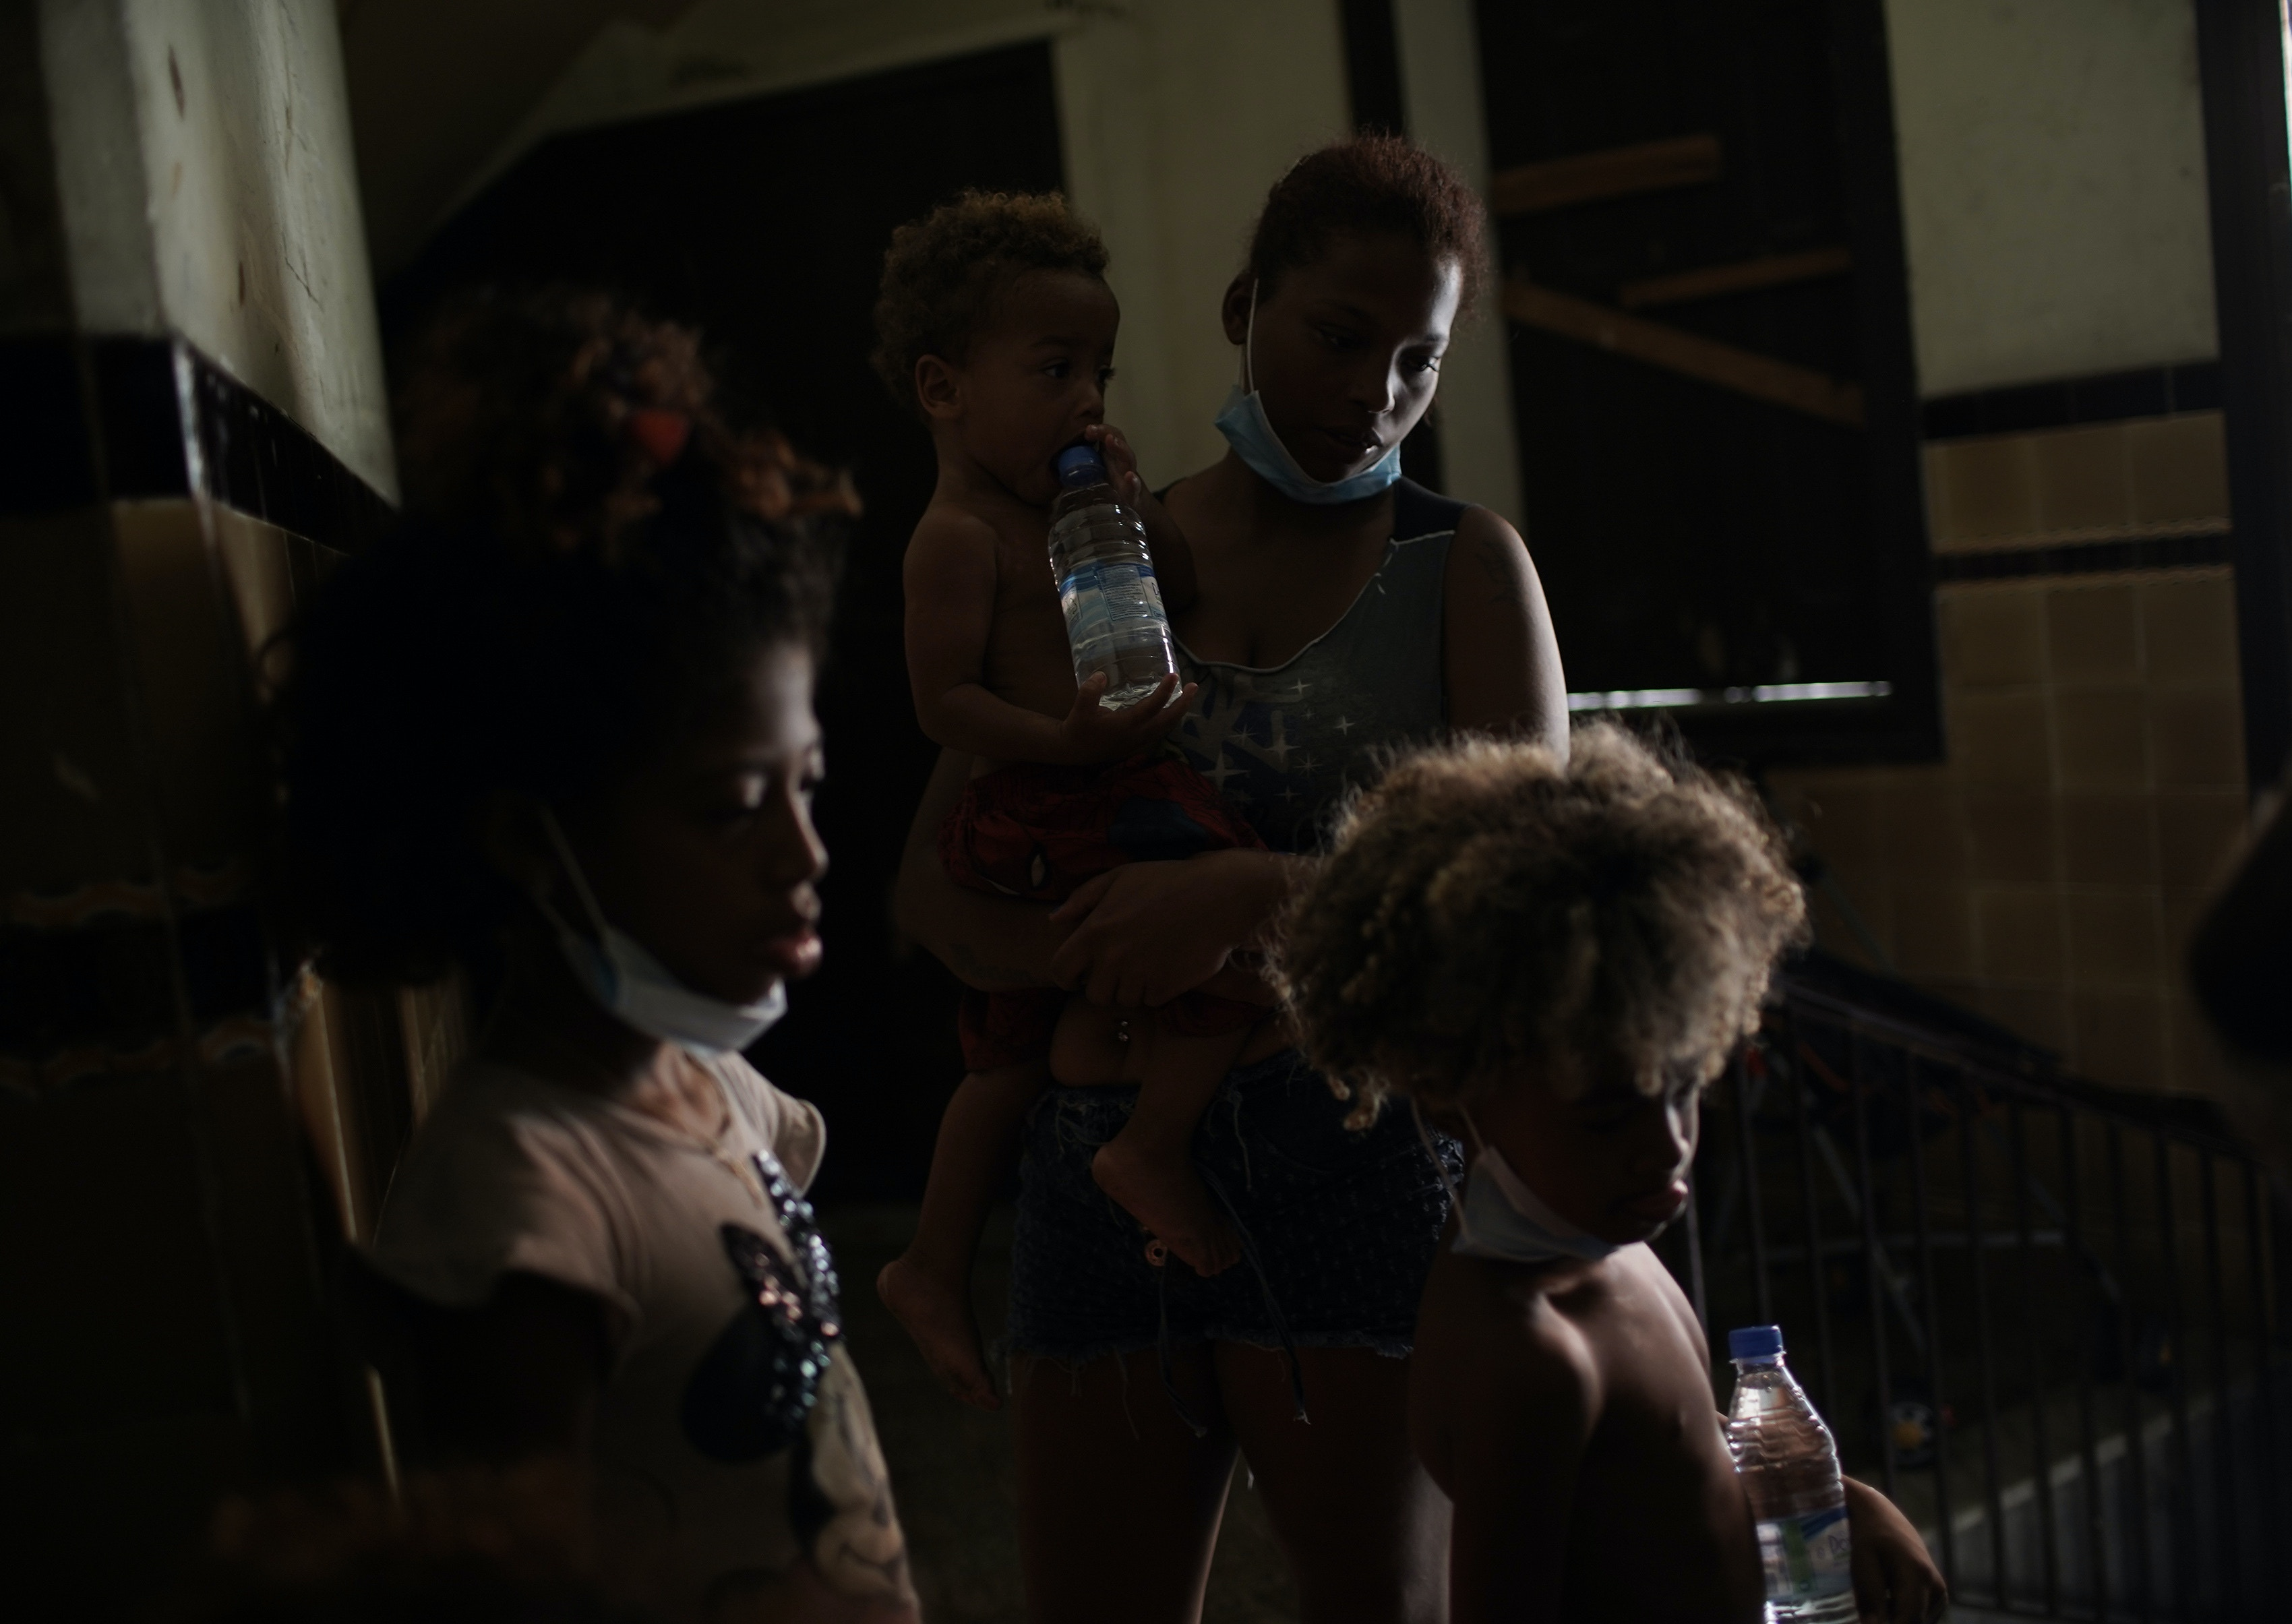 Residents wait to be served a plate of food donated by aid groups, inside an occupied building amid the new coronavirus pandemic, in Rio de Janeiro, Brazil, on March 10, 2021.